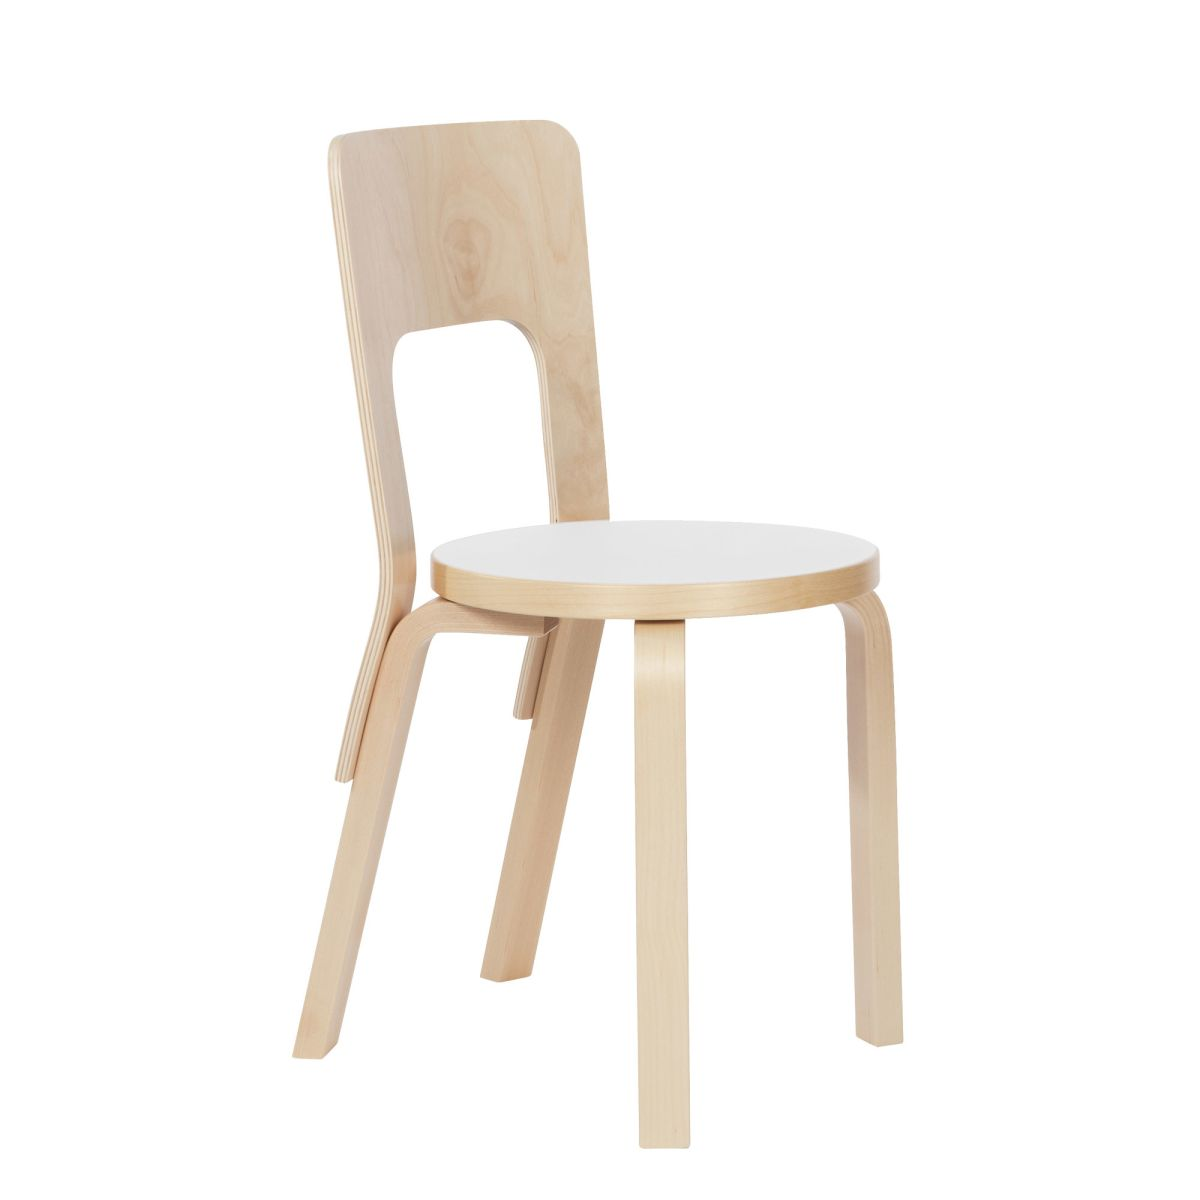 Chair-66-White-Laminate_Web-1975921